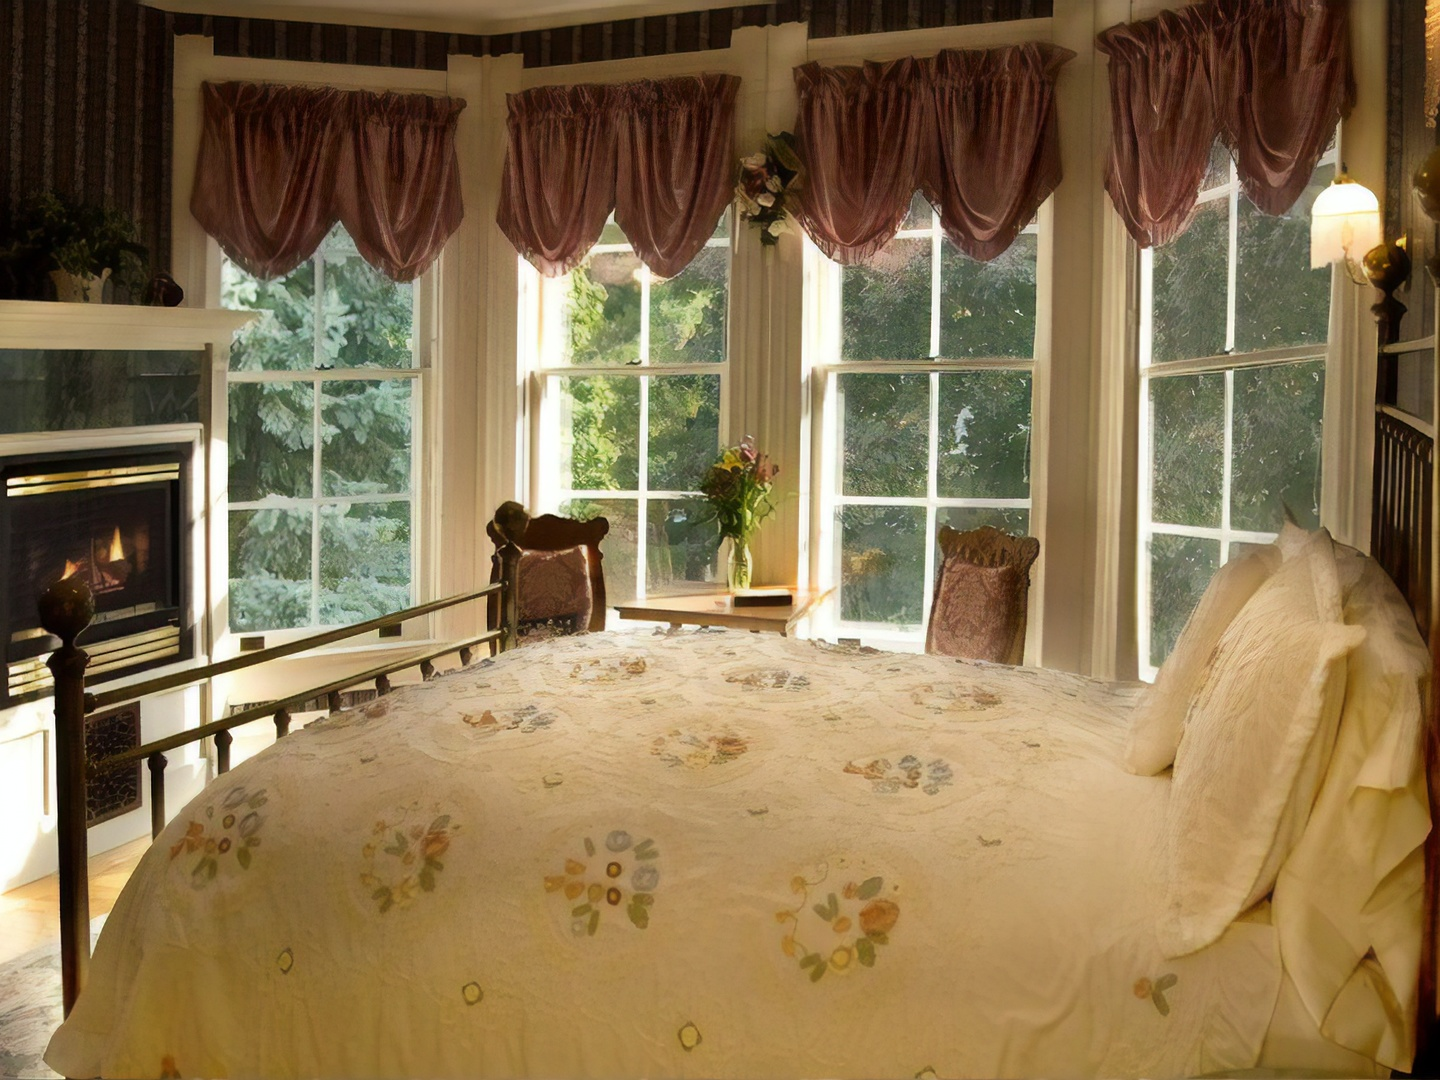 A bedroom with a bed and a large window at Phipps Inn Bed & Breakfast.